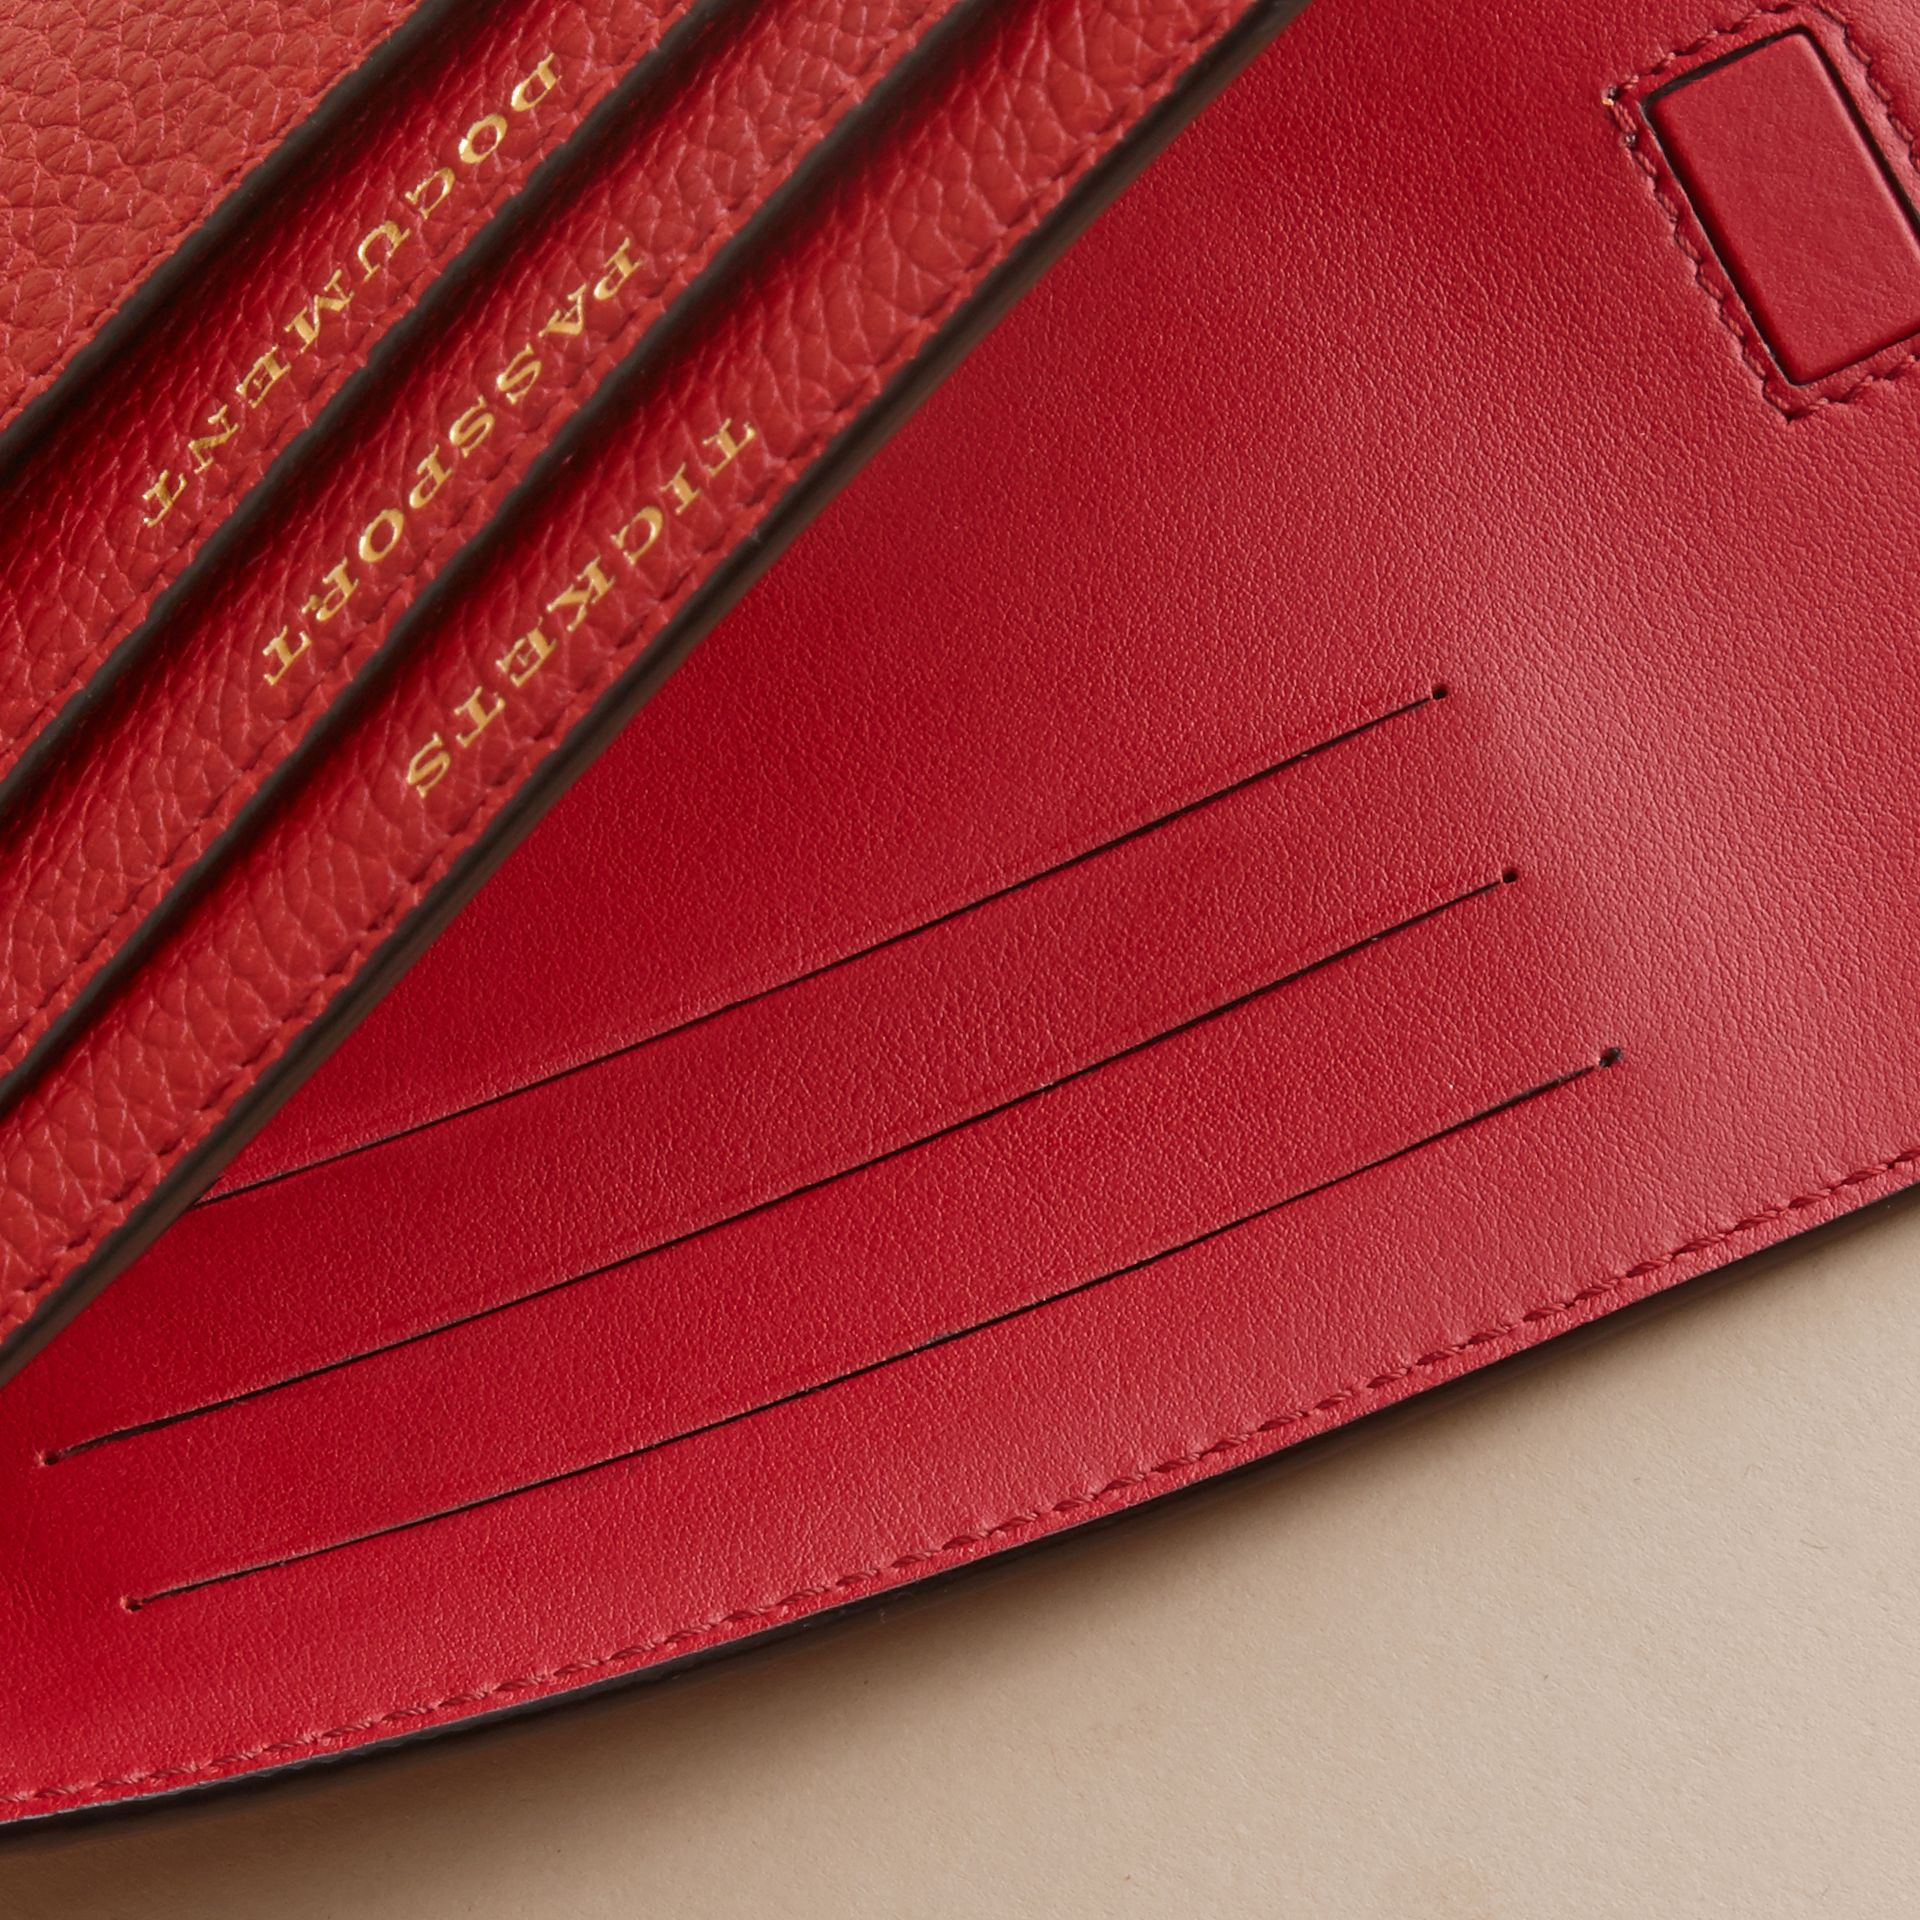 Grainy Leather Travel Case in Parade Red - Women | Burberry - gallery image 4